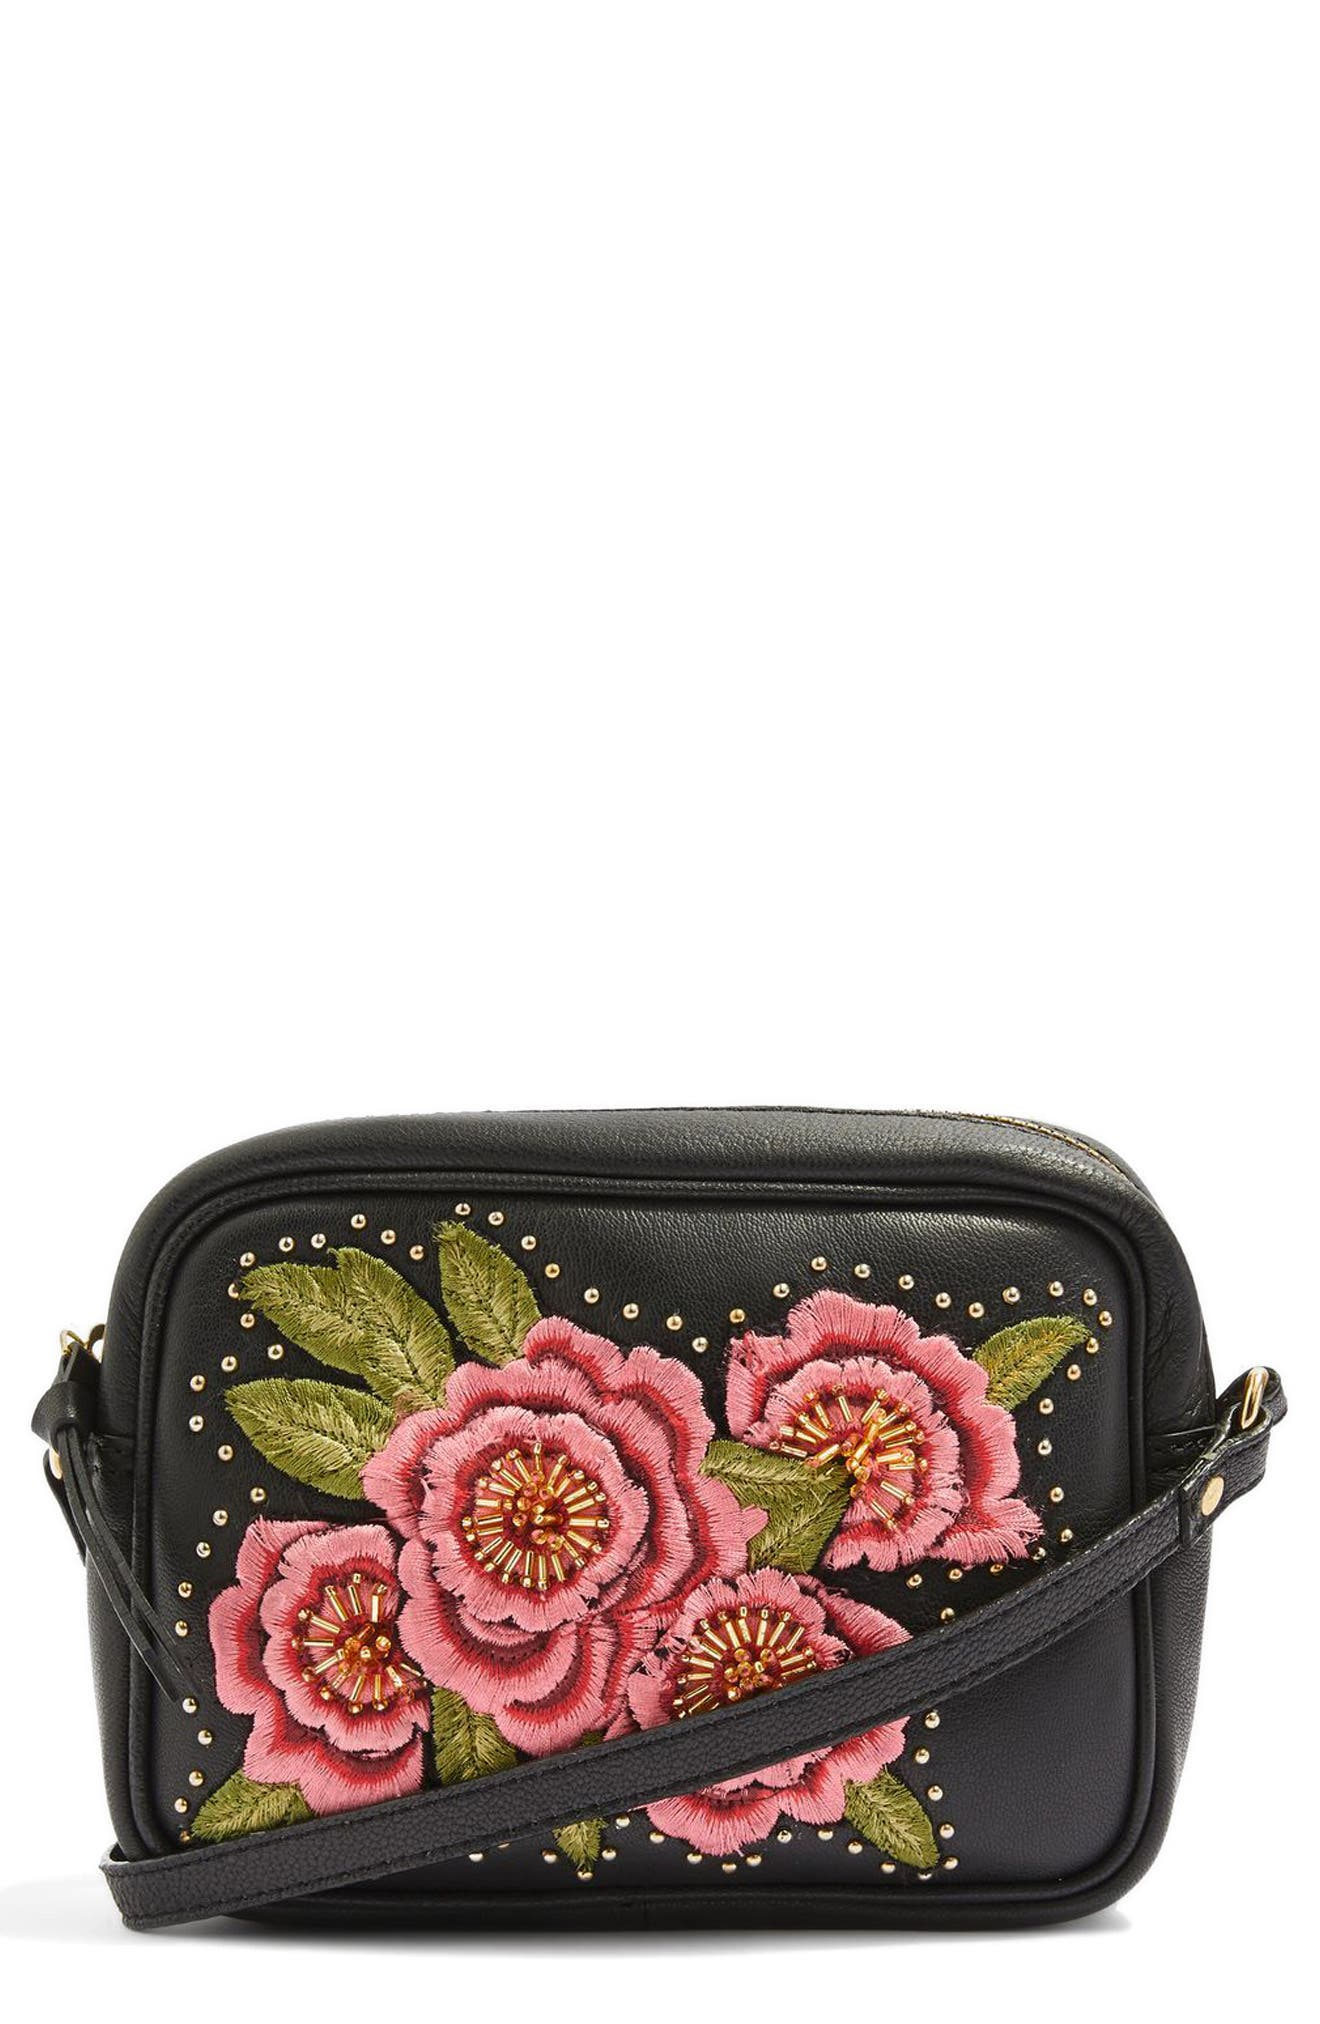 Floral Embroidered Leather Crossbody Bag,                         Main,                         color, Black Multi